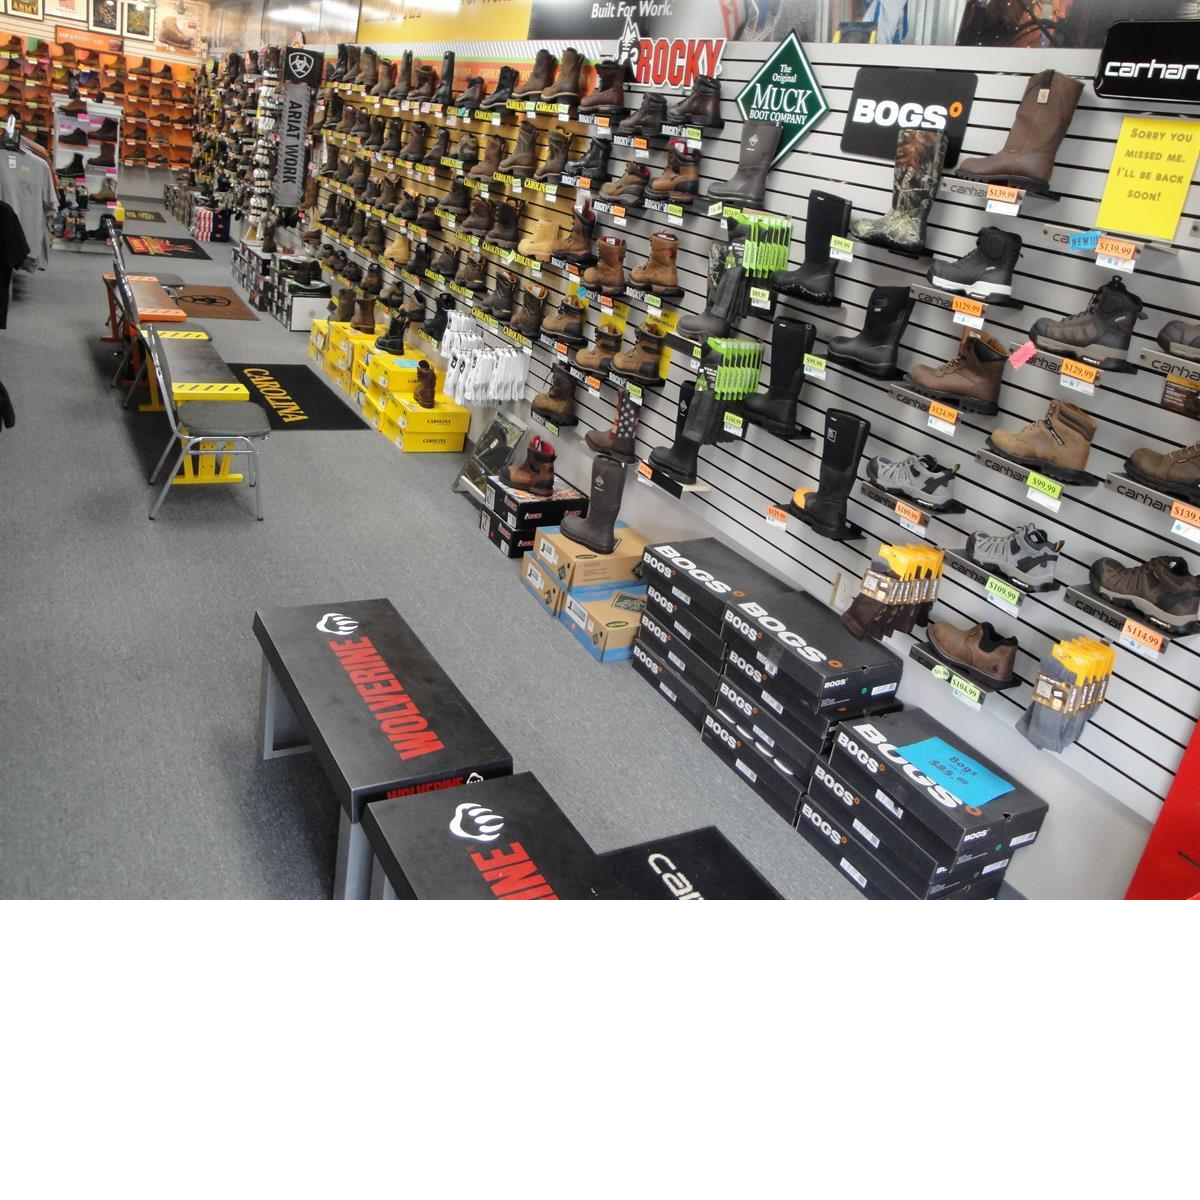 Work Boot Selection Inside Store